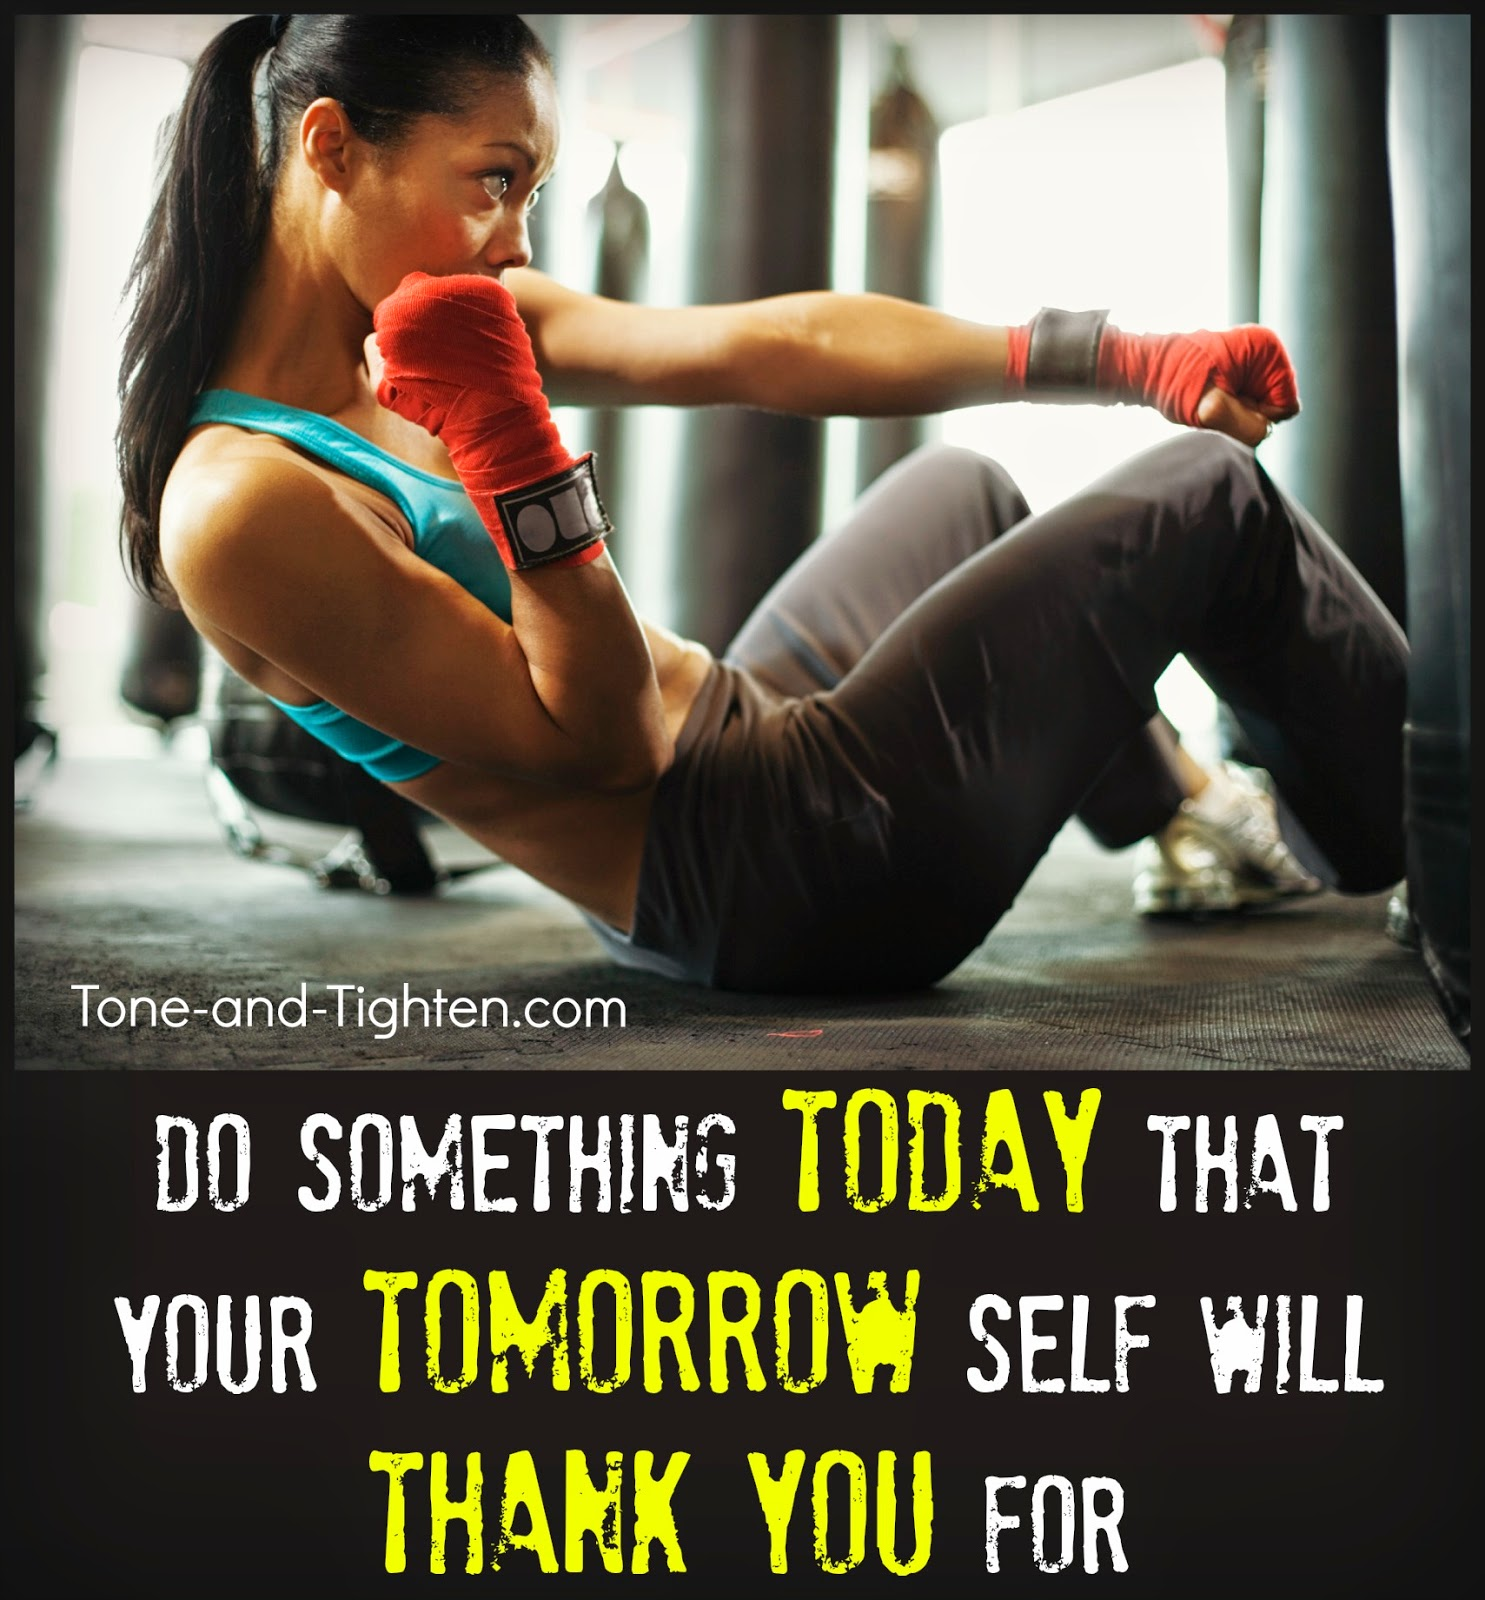 http://tone-and-tighten.com/2014/02/fitness-motivation-do-something-today-your-tomorrow-self-will-thank-you-for.html